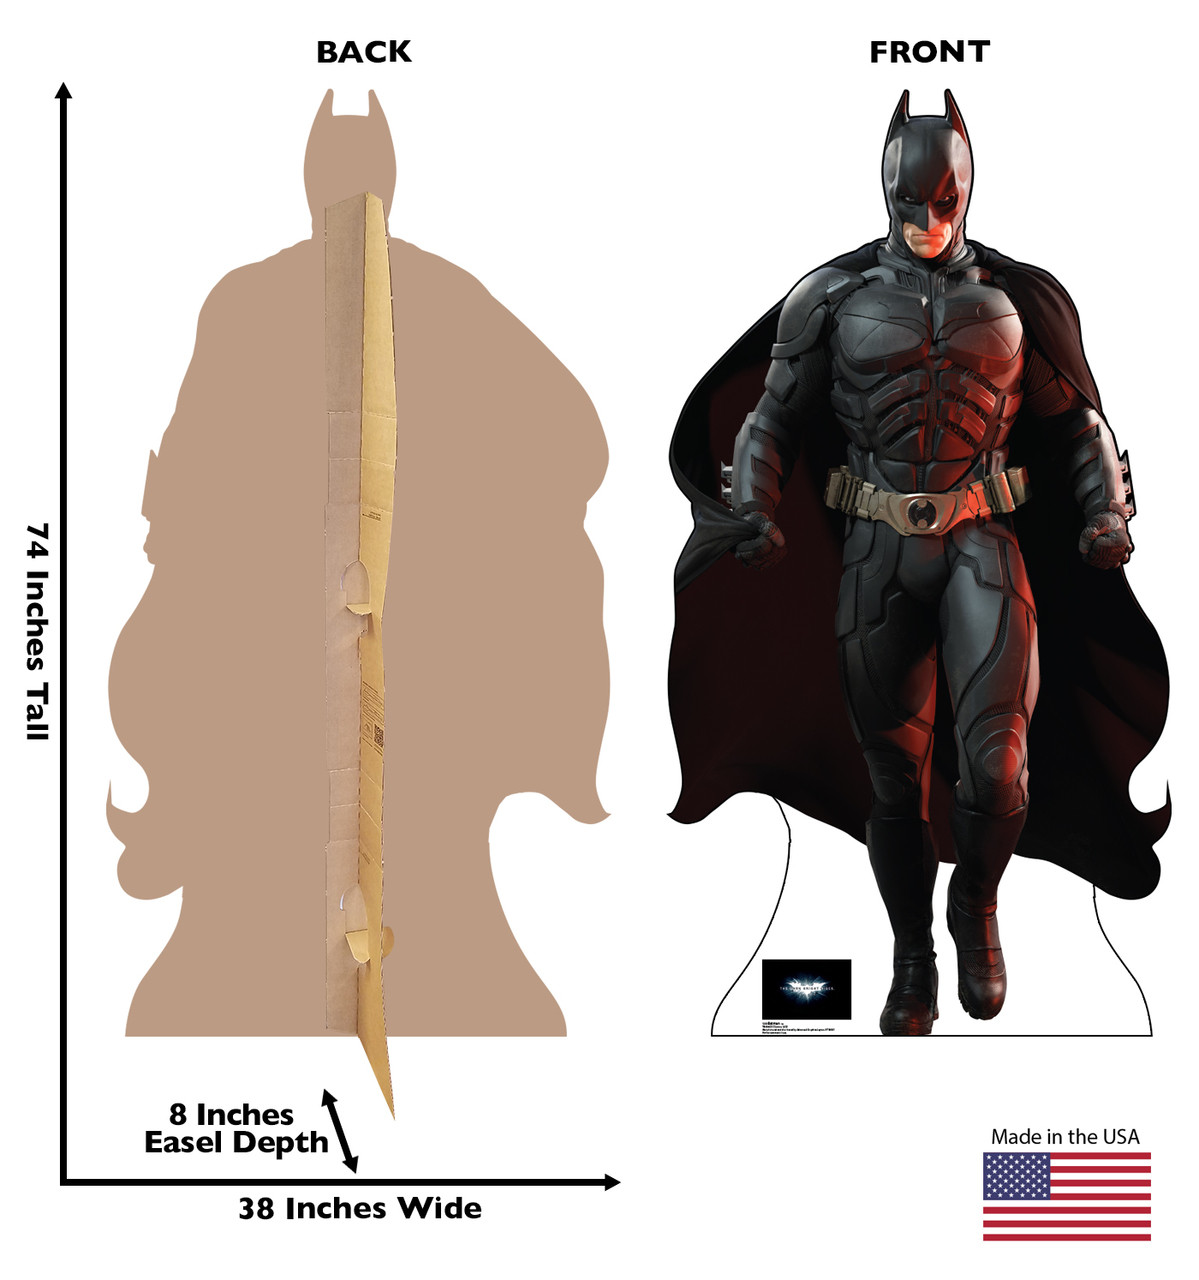 Batman - Dark Knight Rises Cardboard Cutout Front and Back View